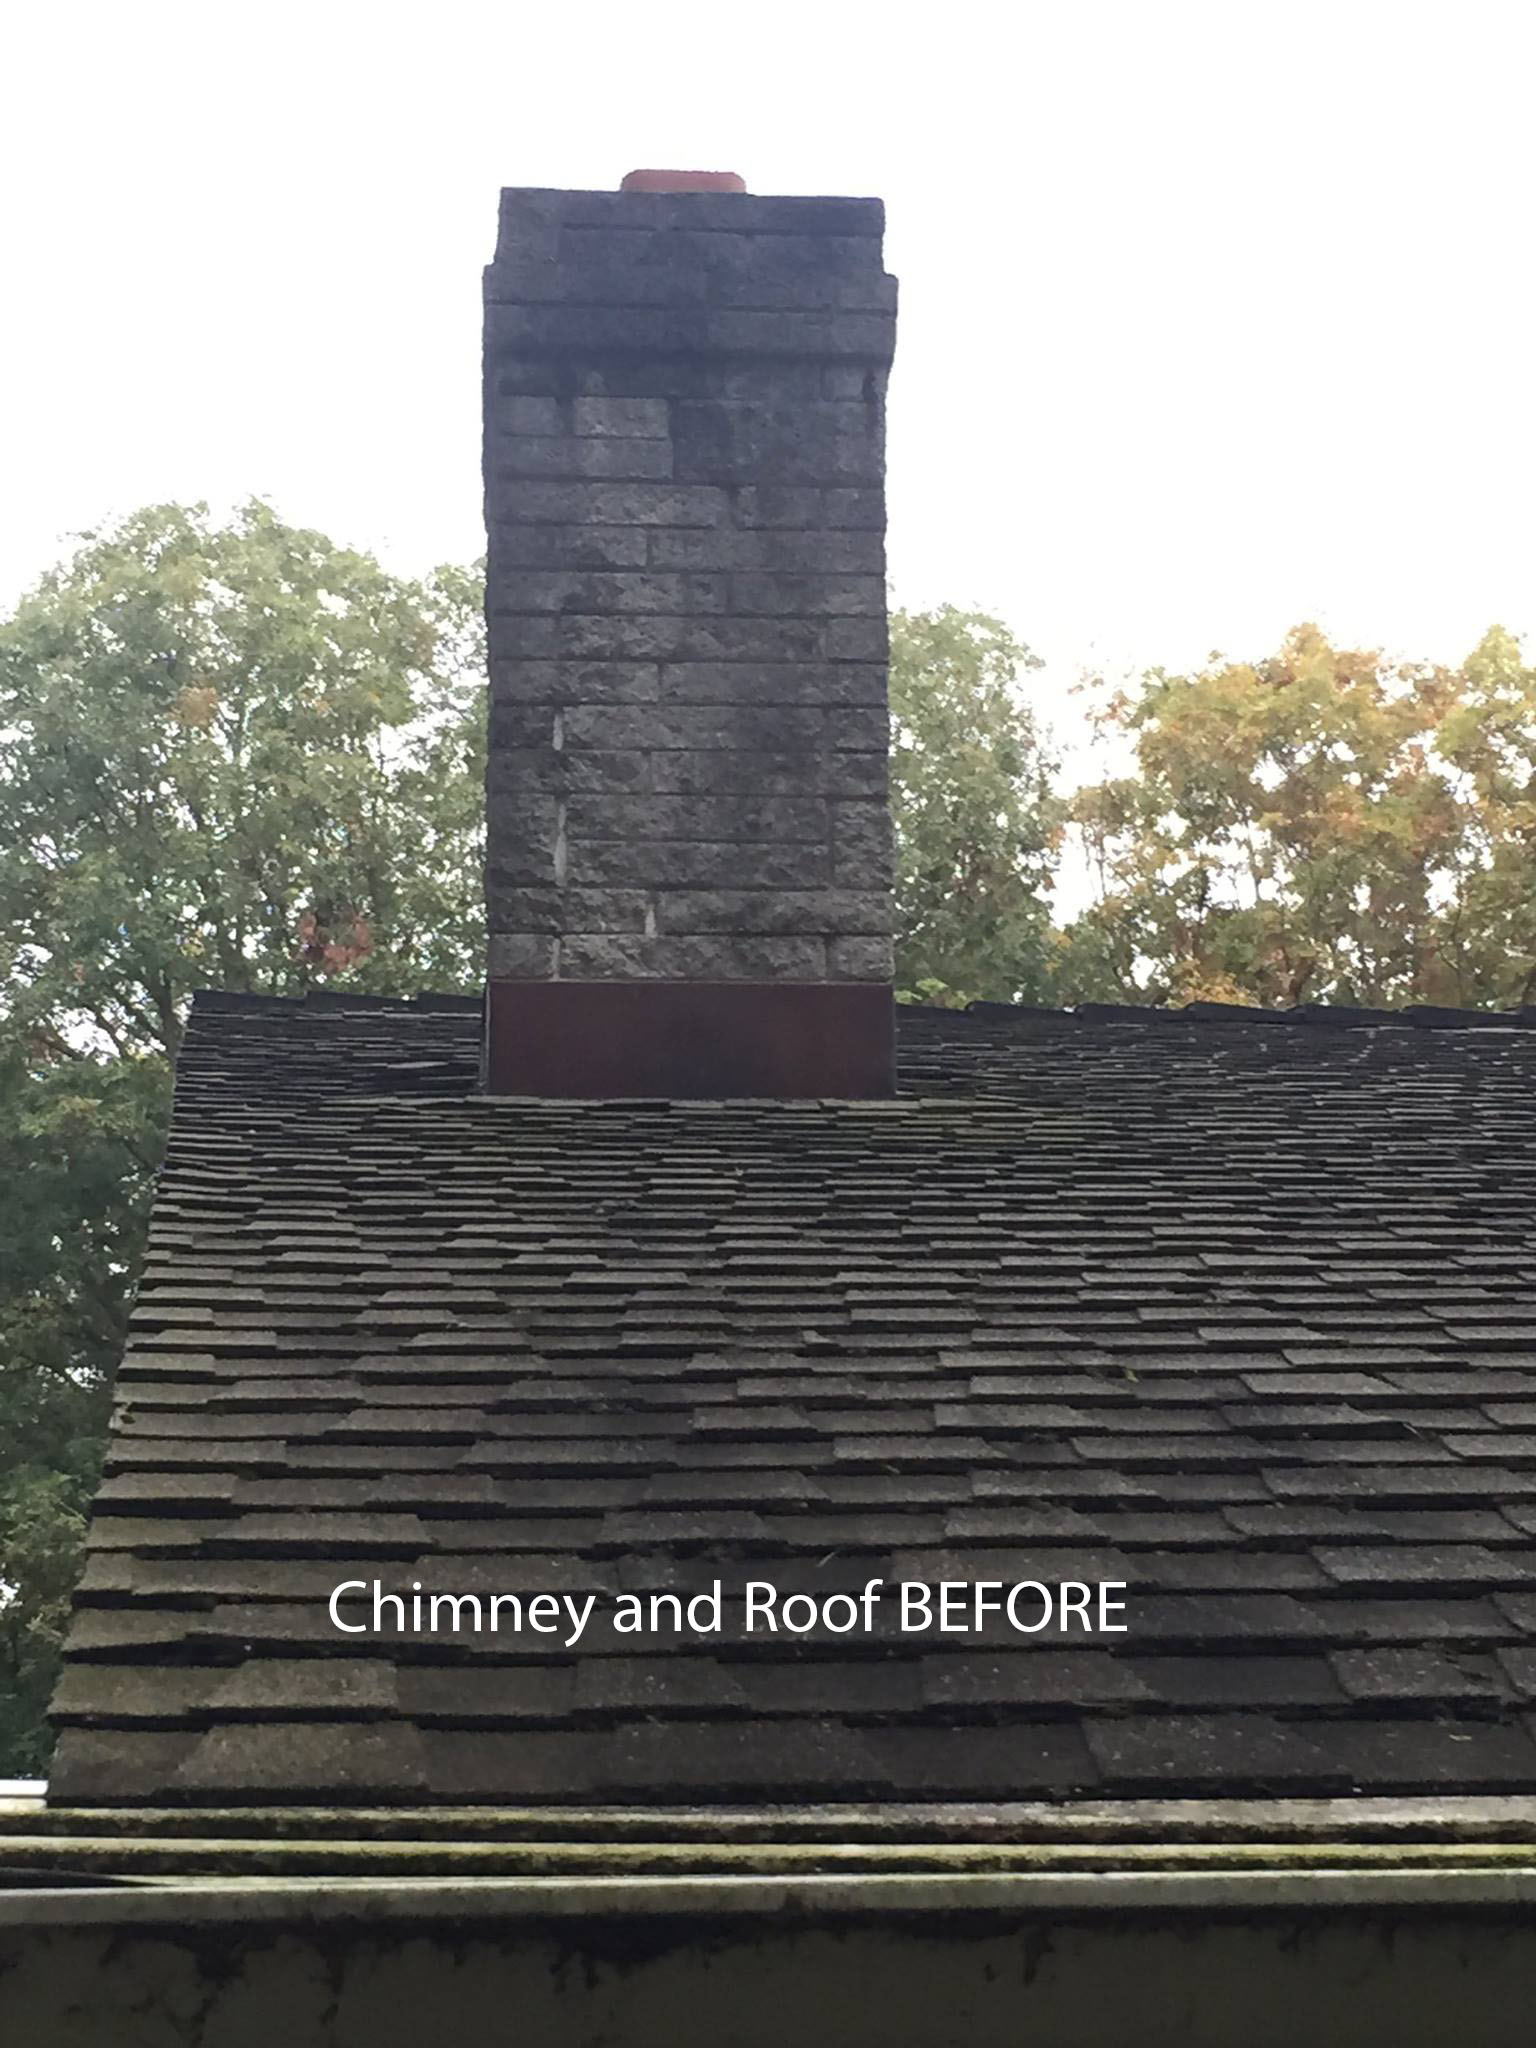 Chimney and roof before